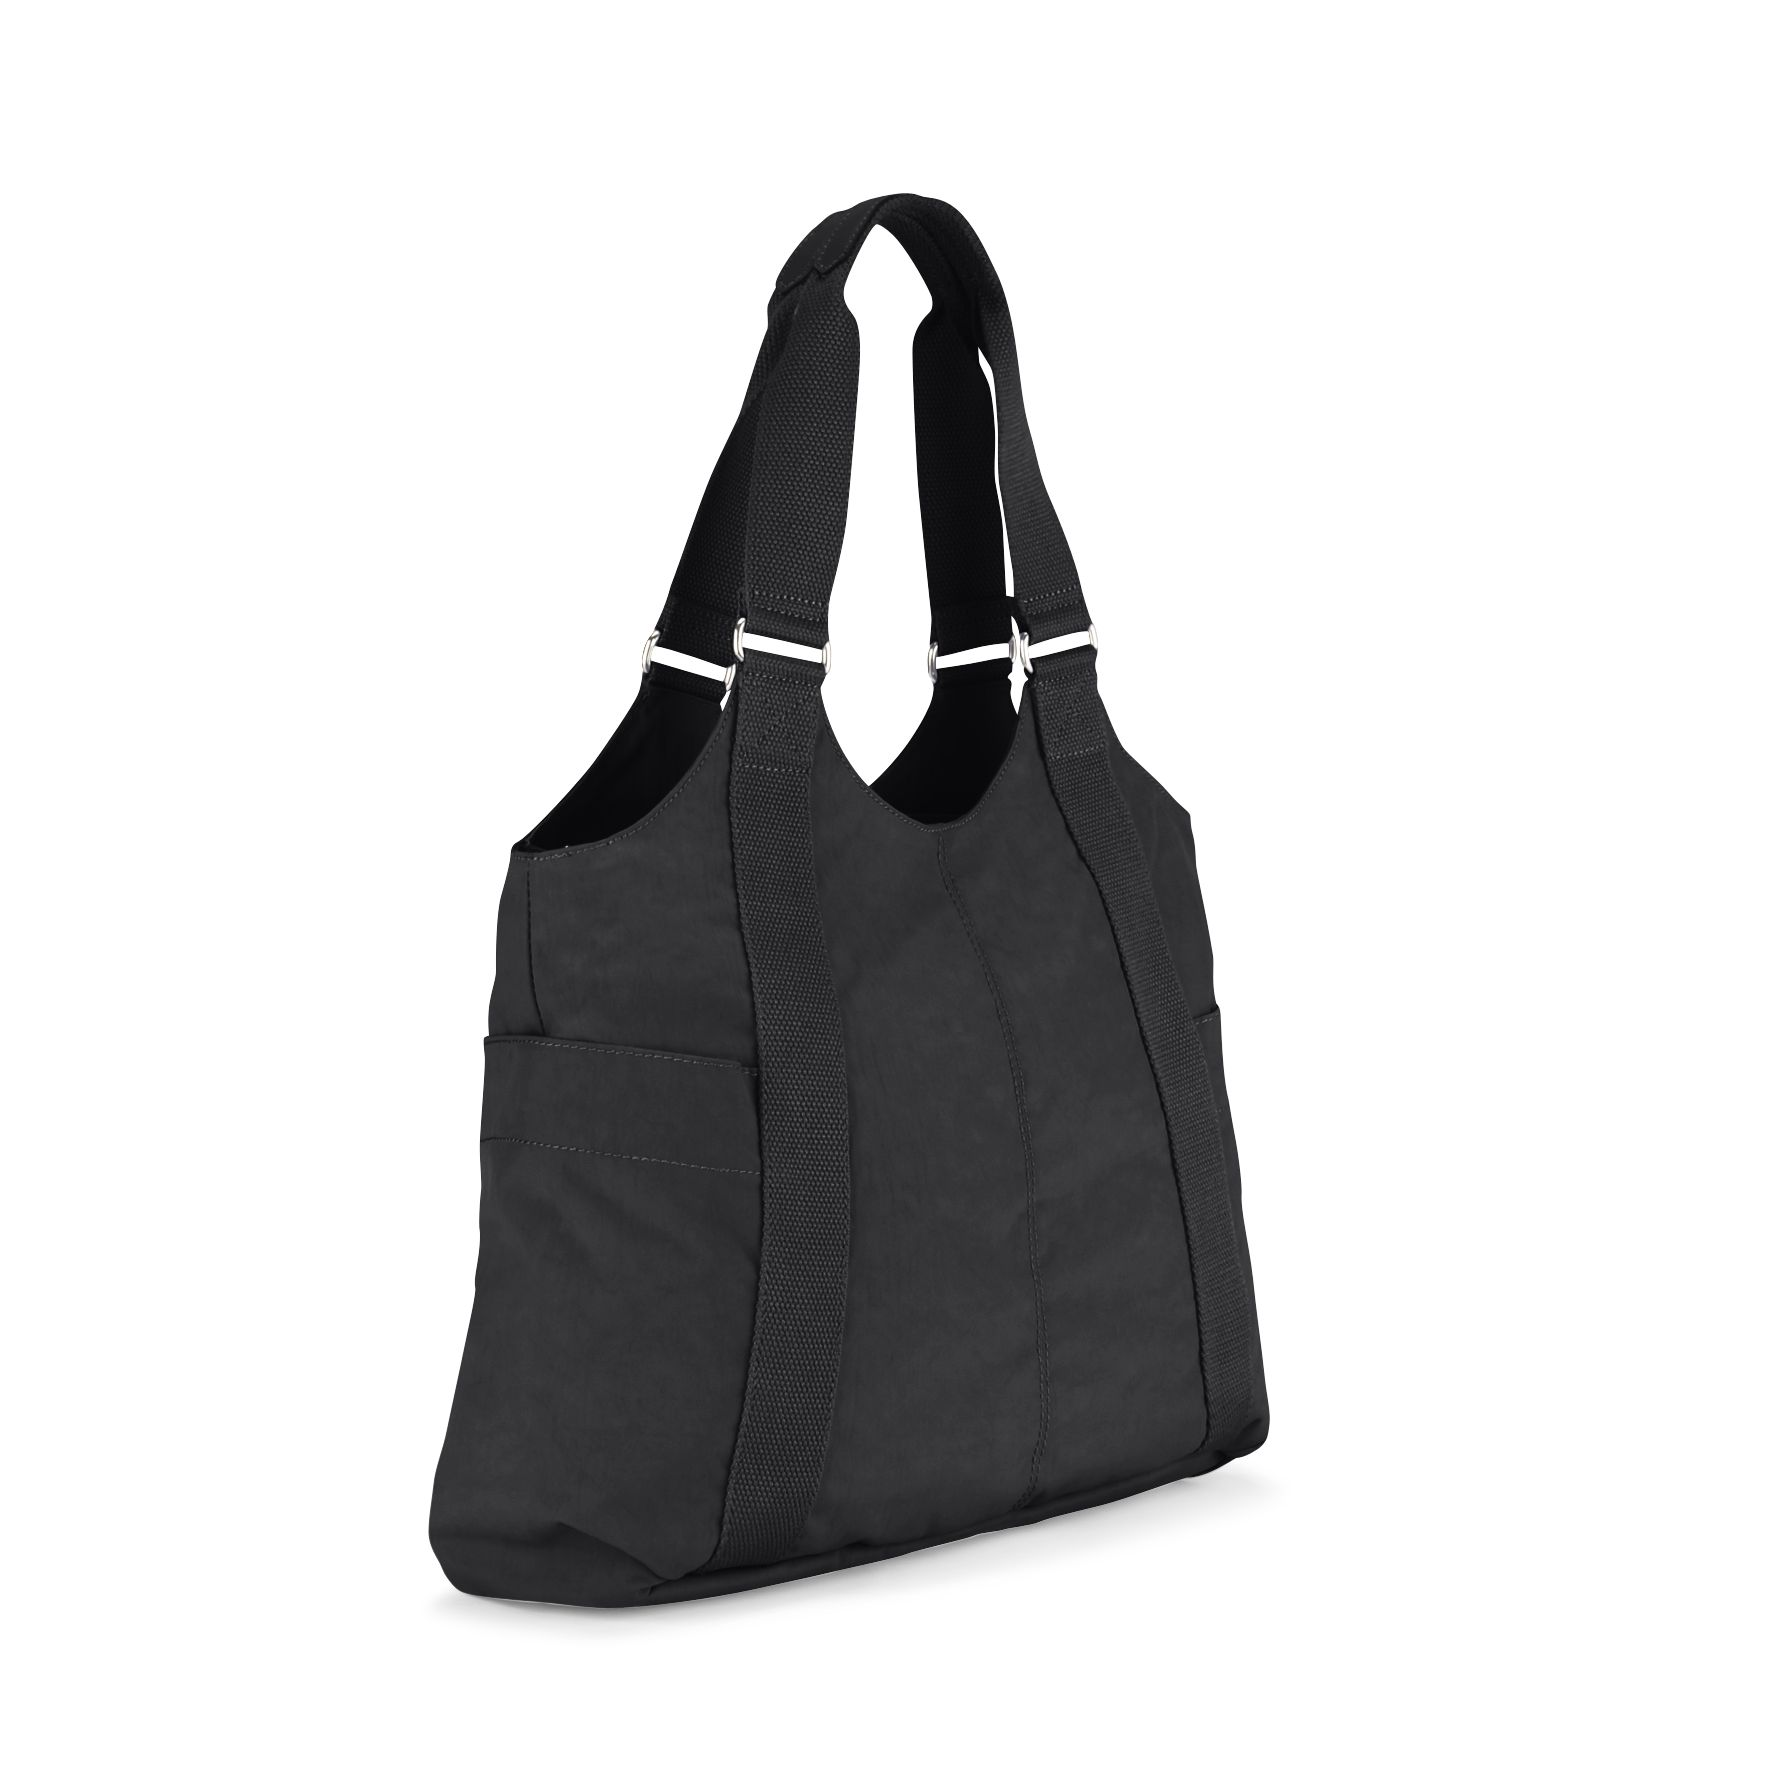 Cicely shoulder bag